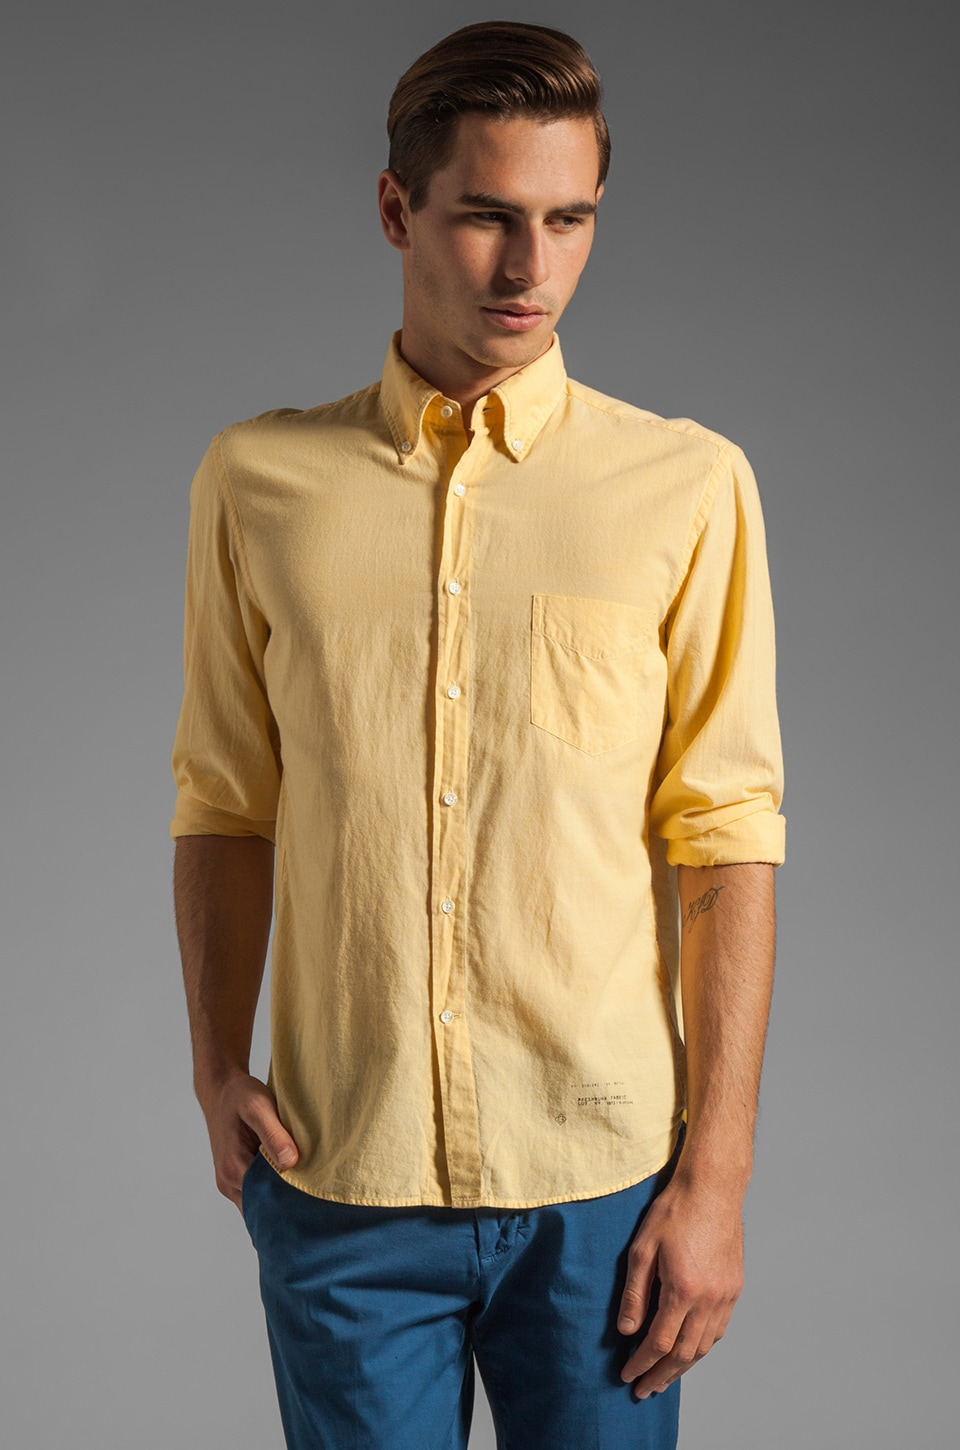 GANT Rugger Selvage Madras E-Z OBD Shirt in Yellow